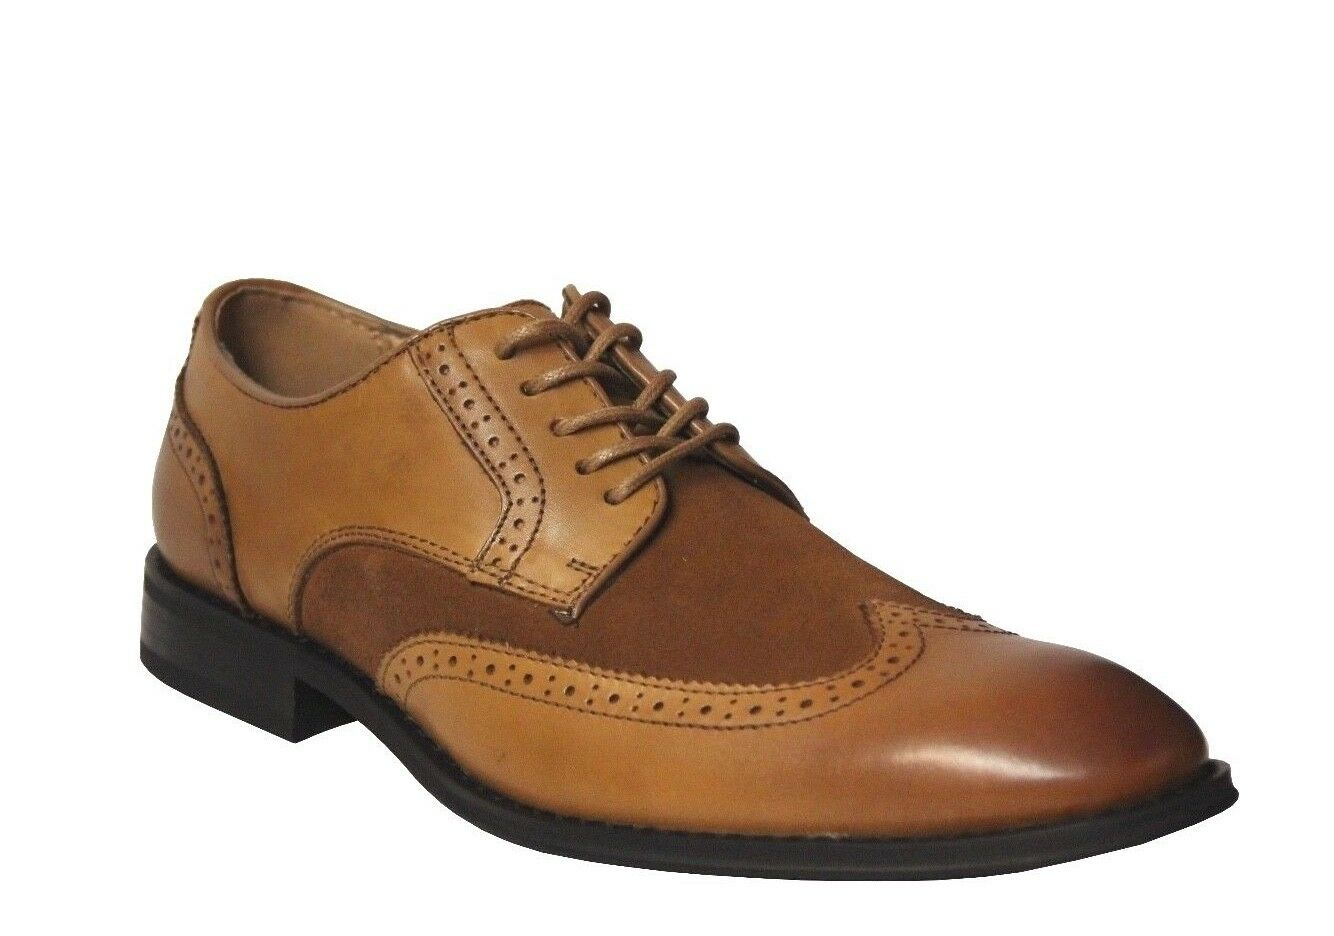 La Milano Men's Tan Leather/Suede Wing Tip Dress Shoes A11408